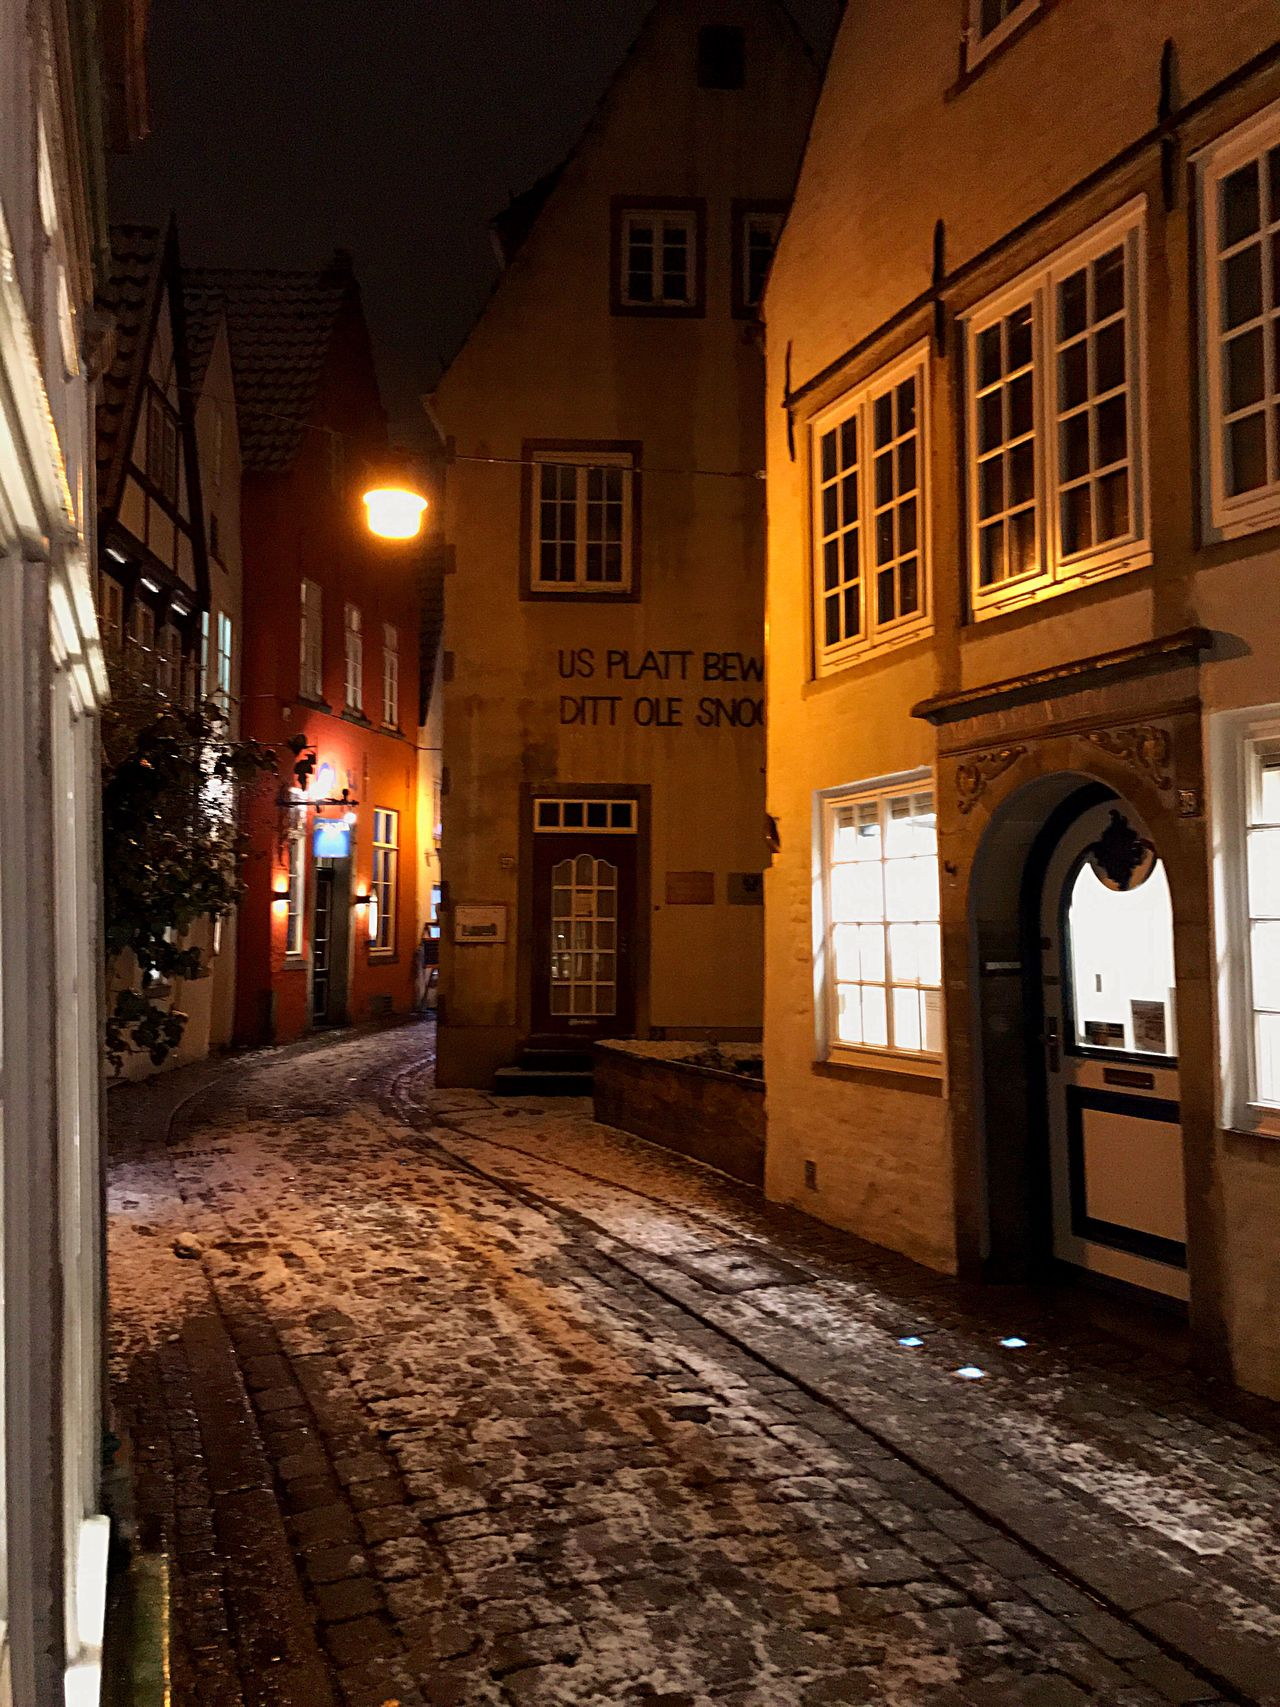 Architecture Night Illuminated City Residential Building Building Exterior Snow Medieval Bremen Germany Light Light And Shadow Alleyway Alley Europe Eurotrip Tourism Schnoor Outdoors